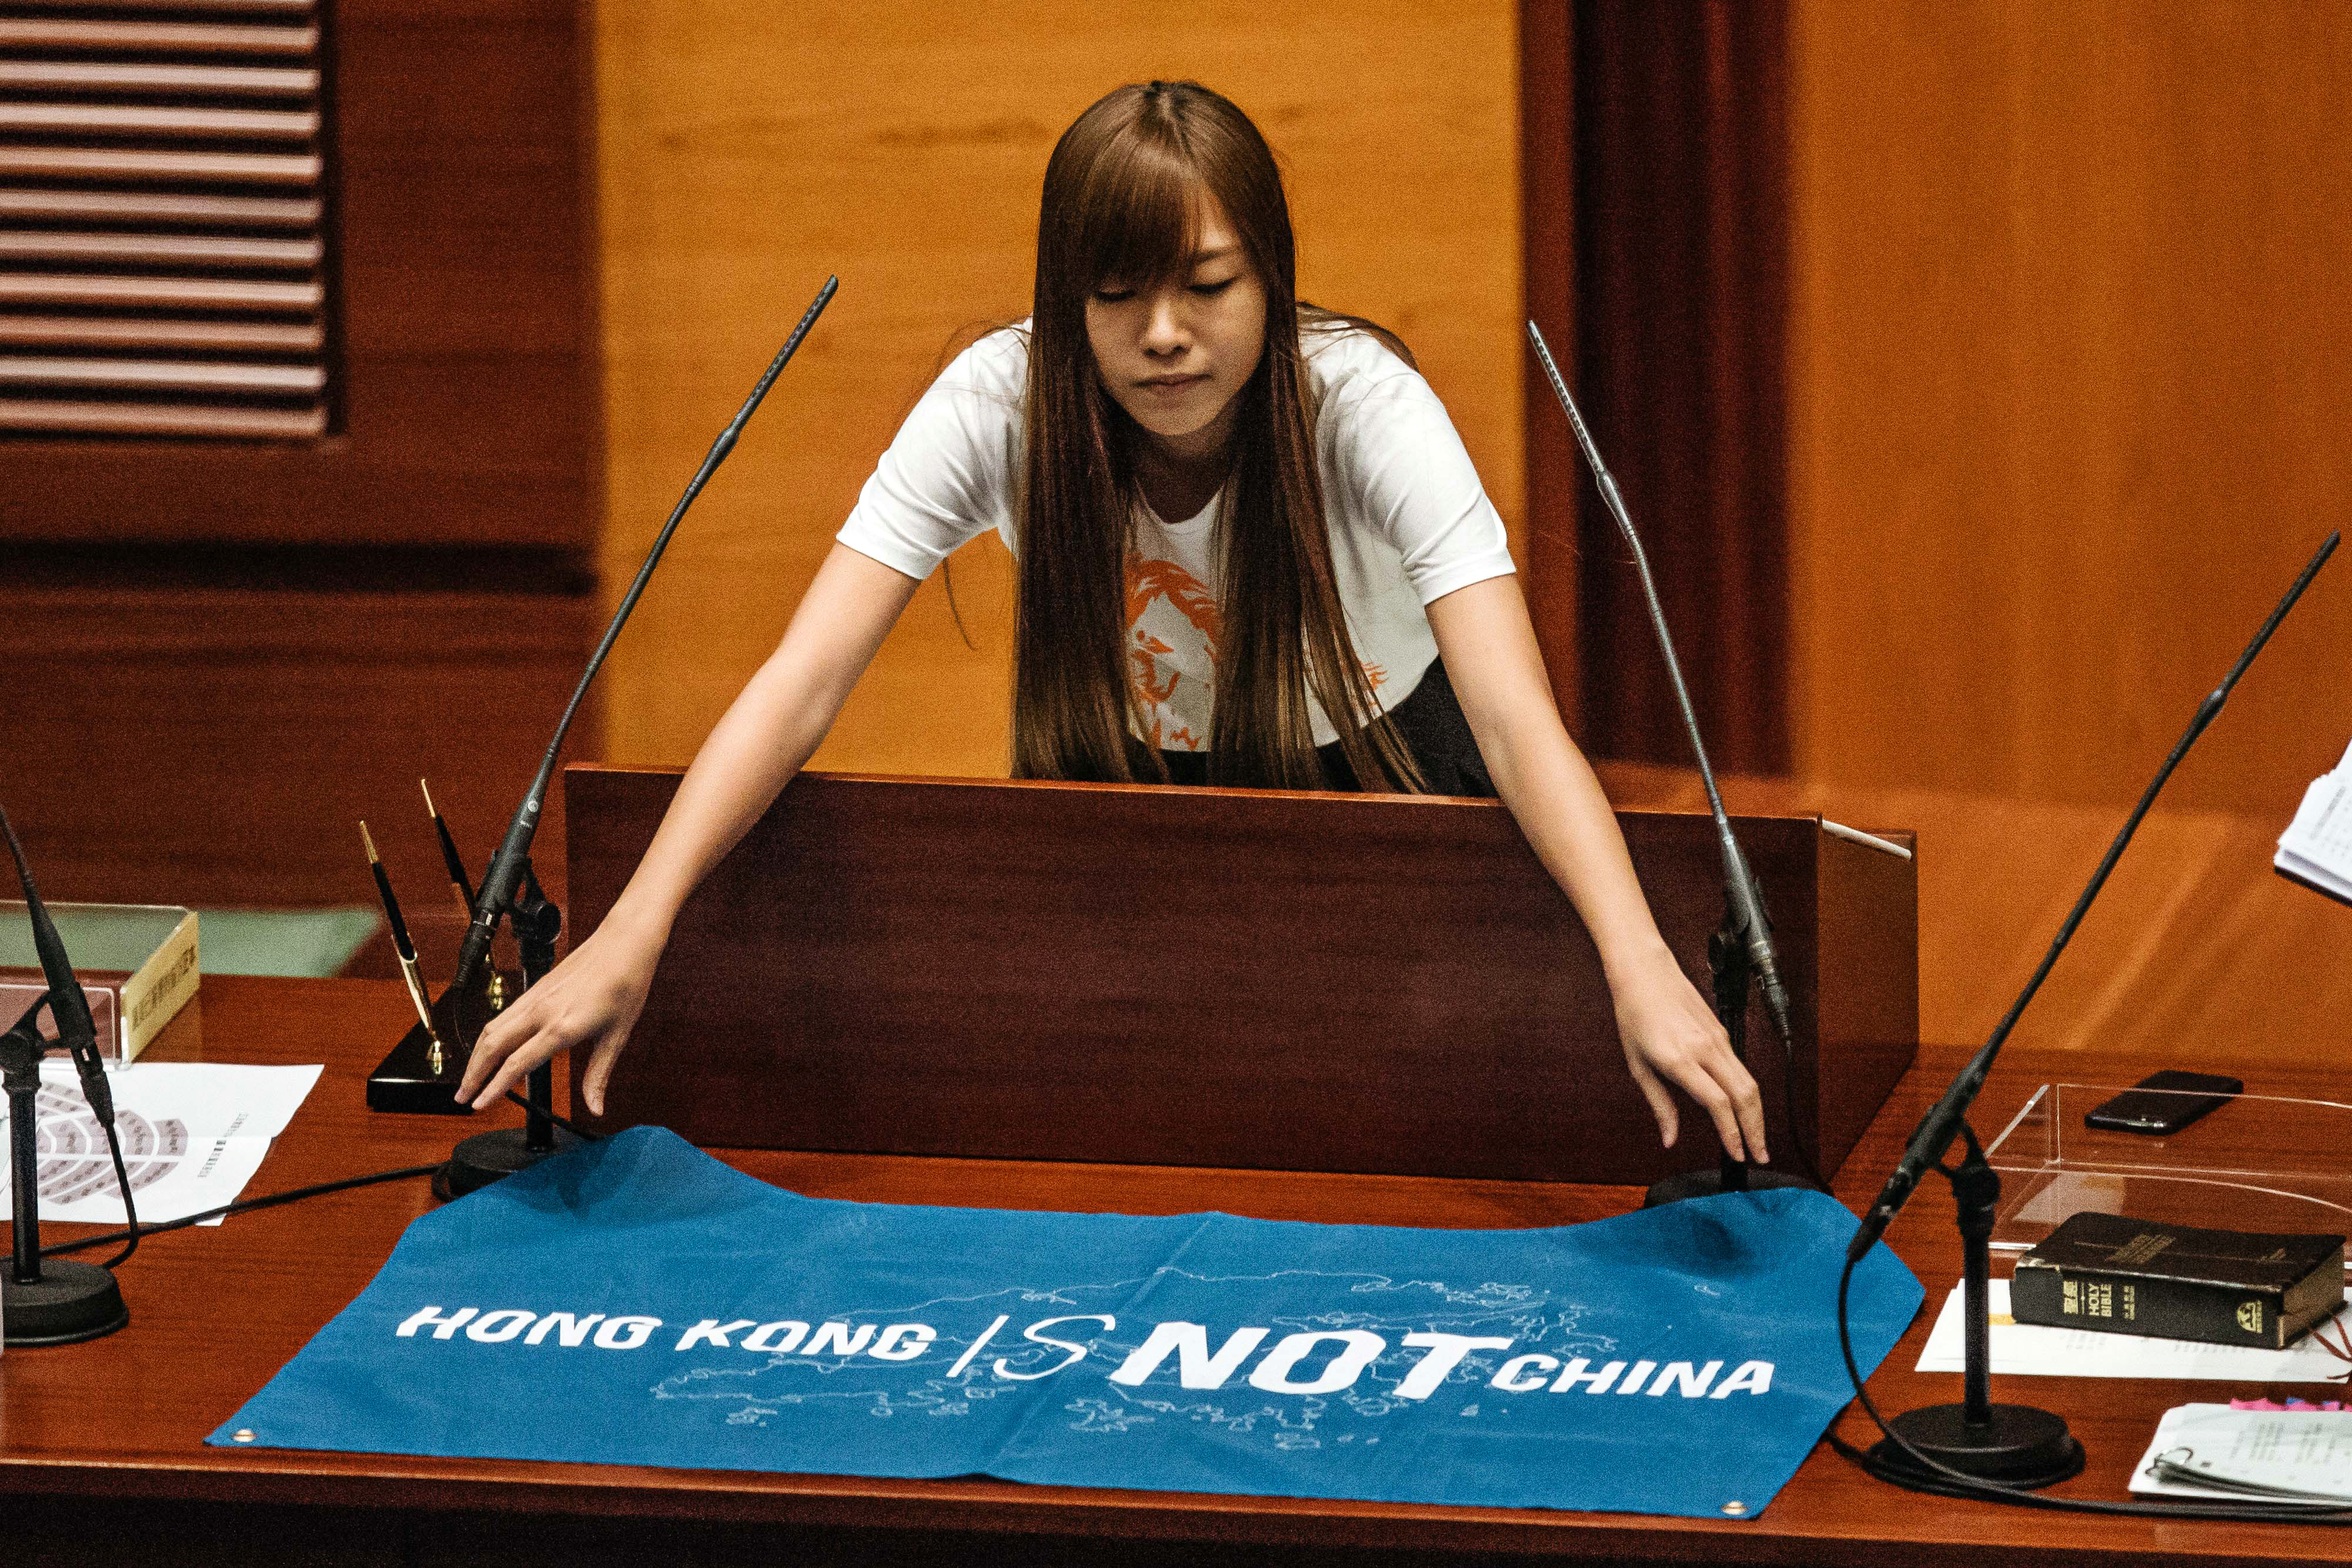 Yau Wai-ching, an incoming lawmaker and member of Youngspiration, unfurls a banner that reads  Hong Kong Is Not China  during an oath-taking ceremony in the chamber of the Legislative Council in Hong Kong on Oct. 12, 2016